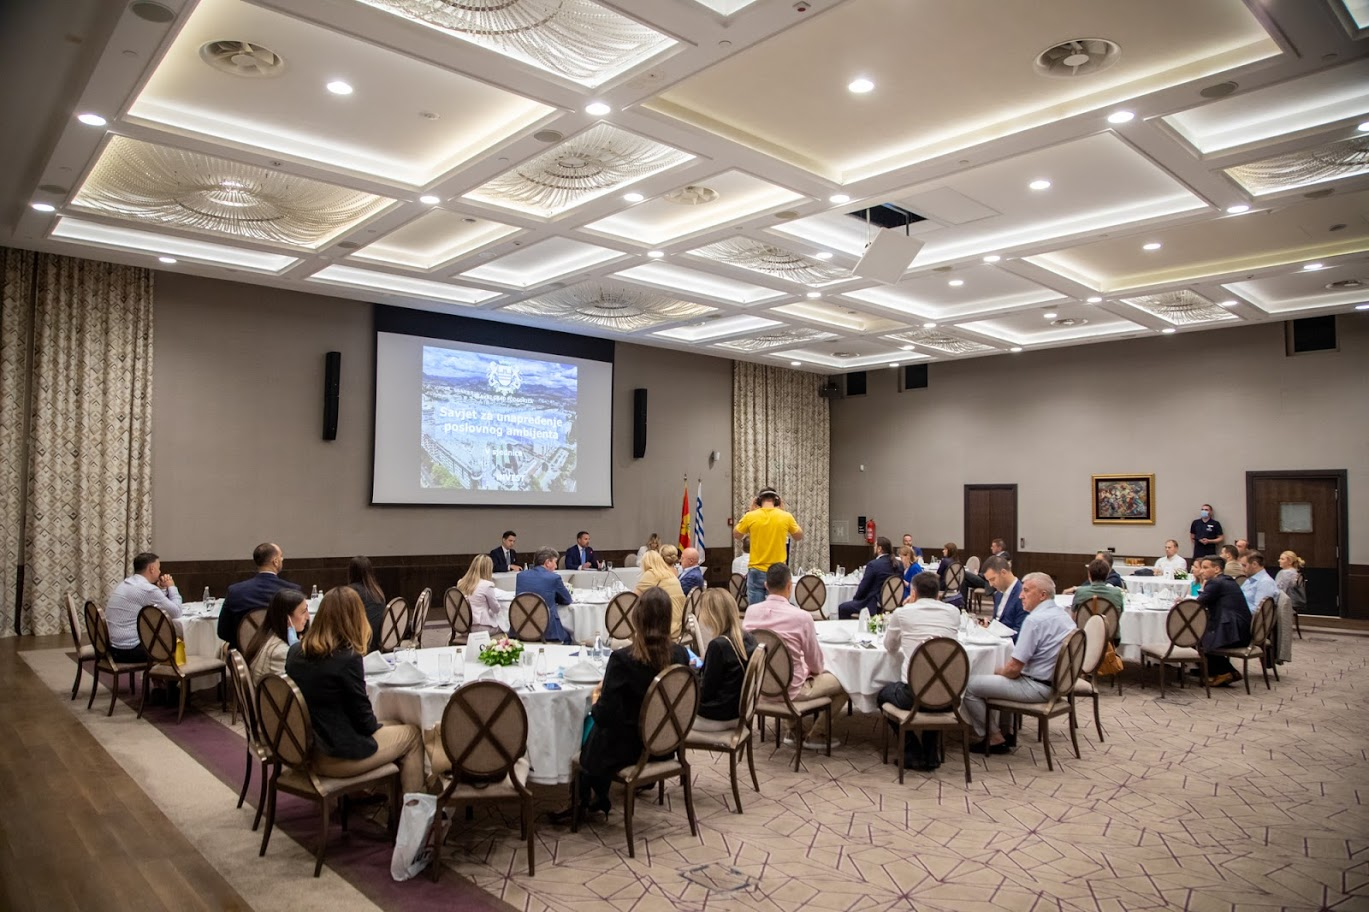 COUNCIL FOR THE IMPROVEMENT OF BUSINESS ENVIRONMENT ON THE TERRITORY OF THE CAPITAL CITY PODGORICA HELD ITS 5TH SESSION